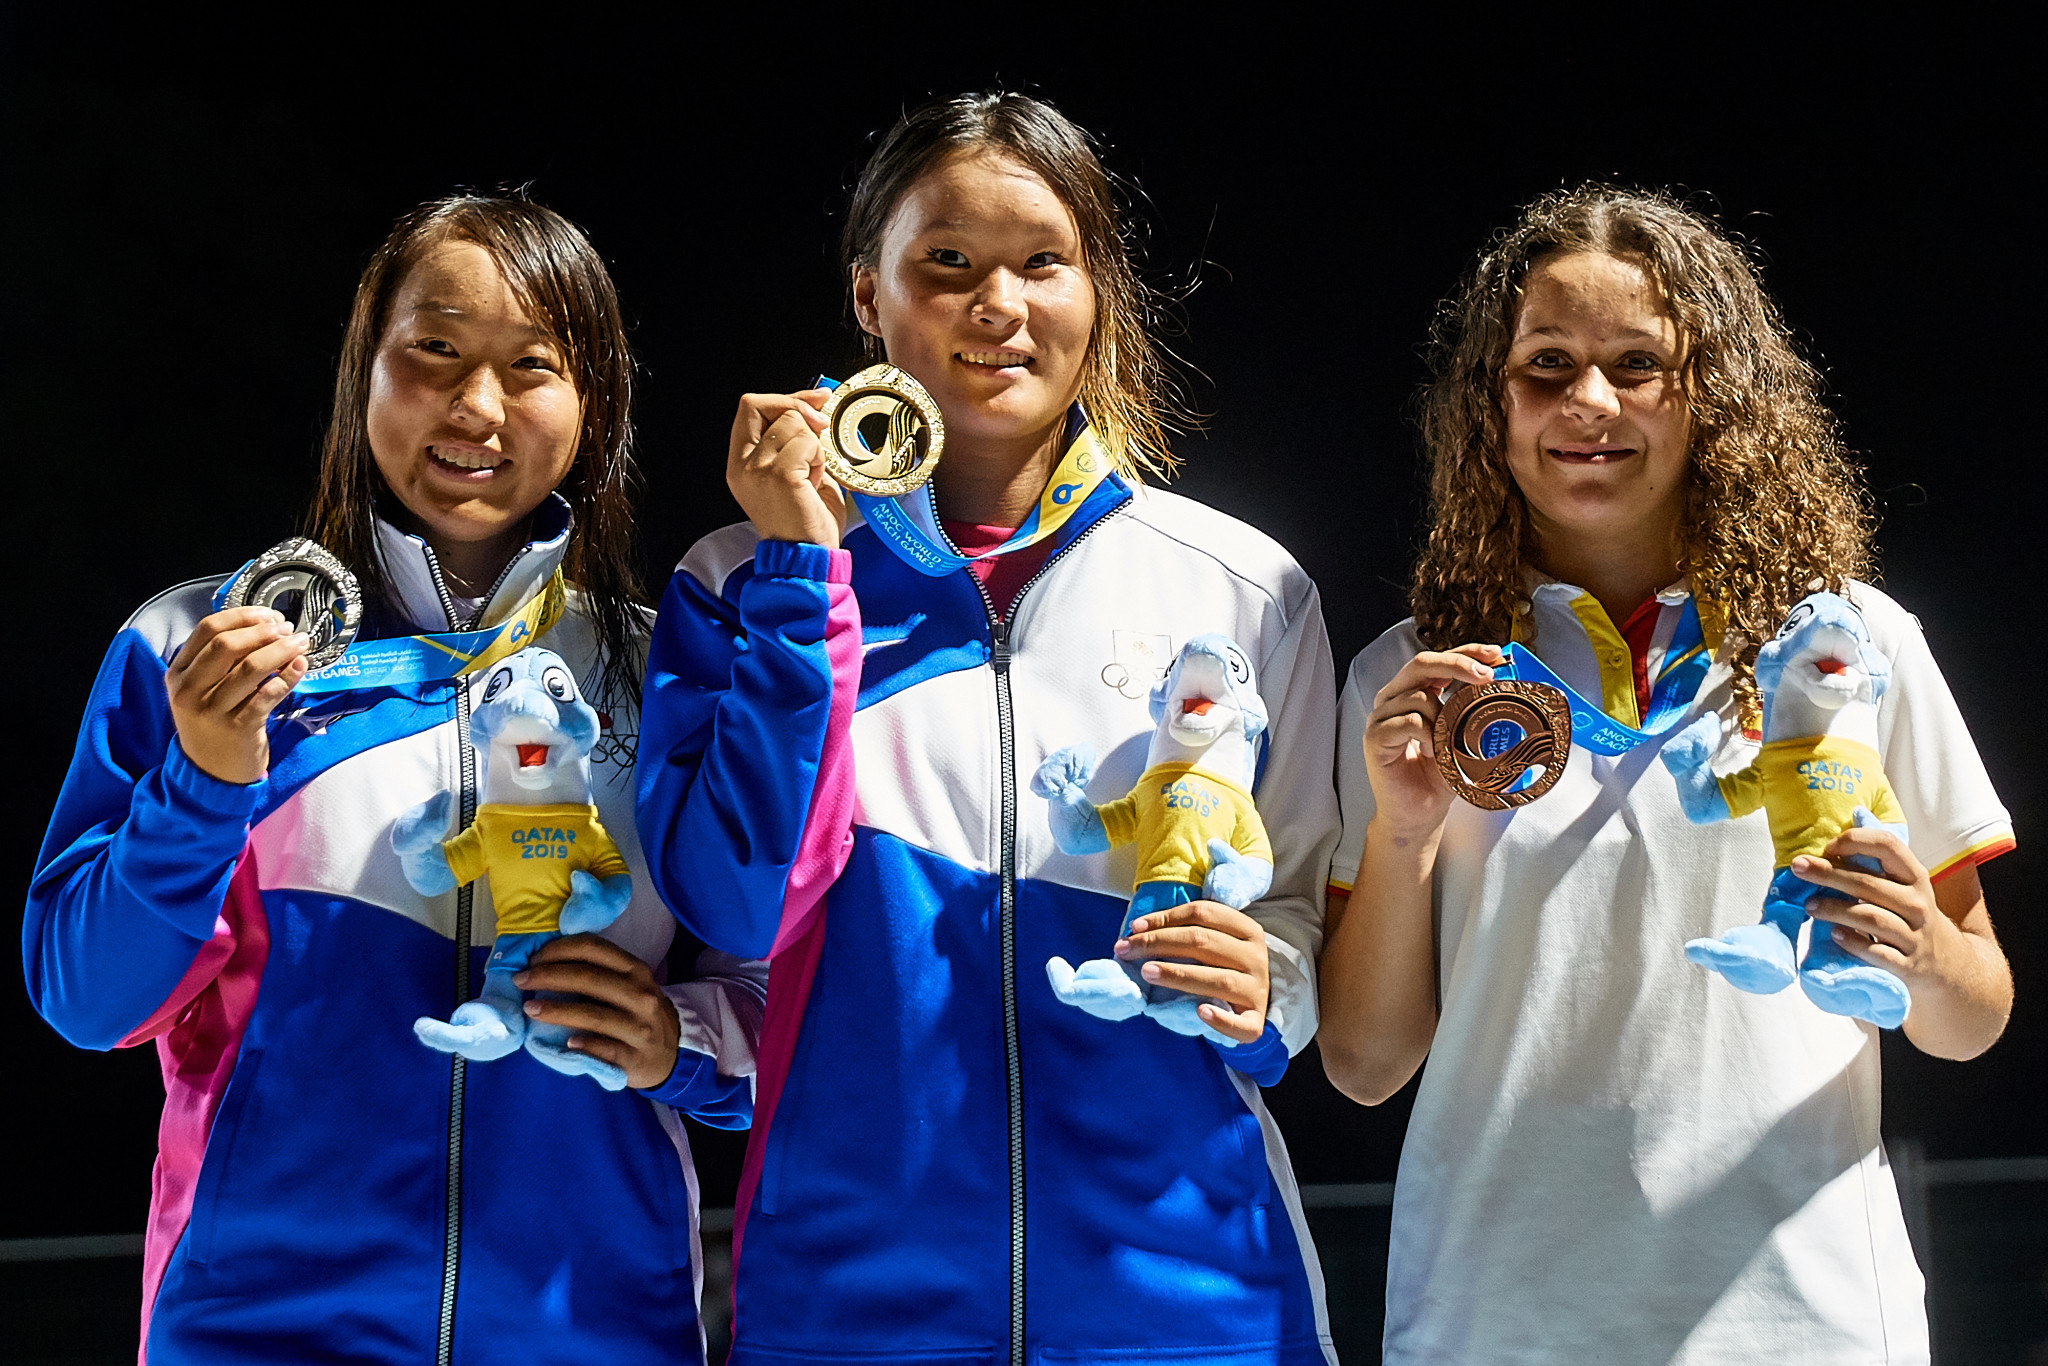 Sakurai Yosozumi, centre, was joined on the podium by team-mate Kihana Ogawa, who won the silver medal, and Spain's Julia Benedetti, who took bronze ©ANOC World Beach Games